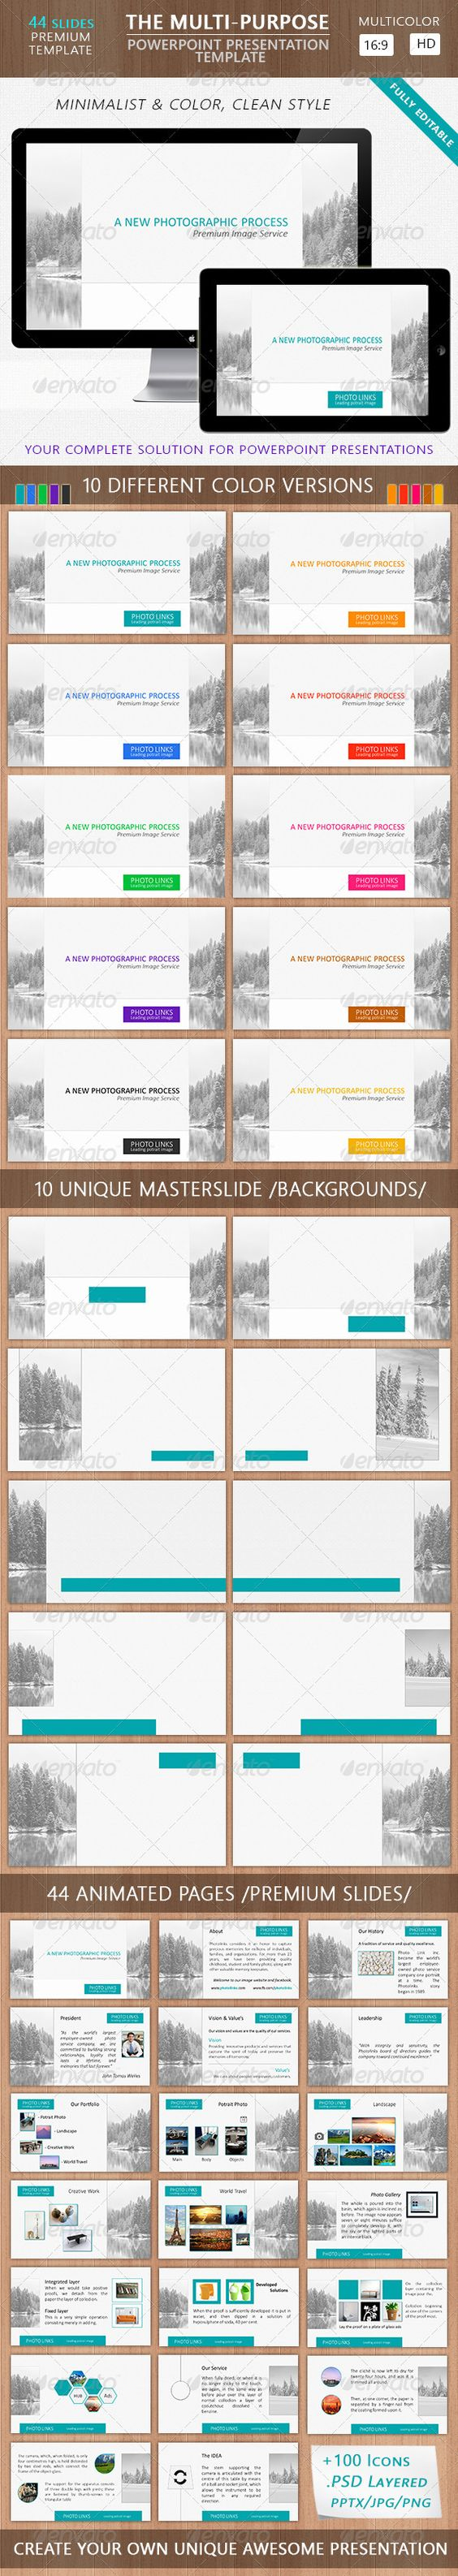 Excellent India Powerpoint Template Images - Entry Level Resume ...